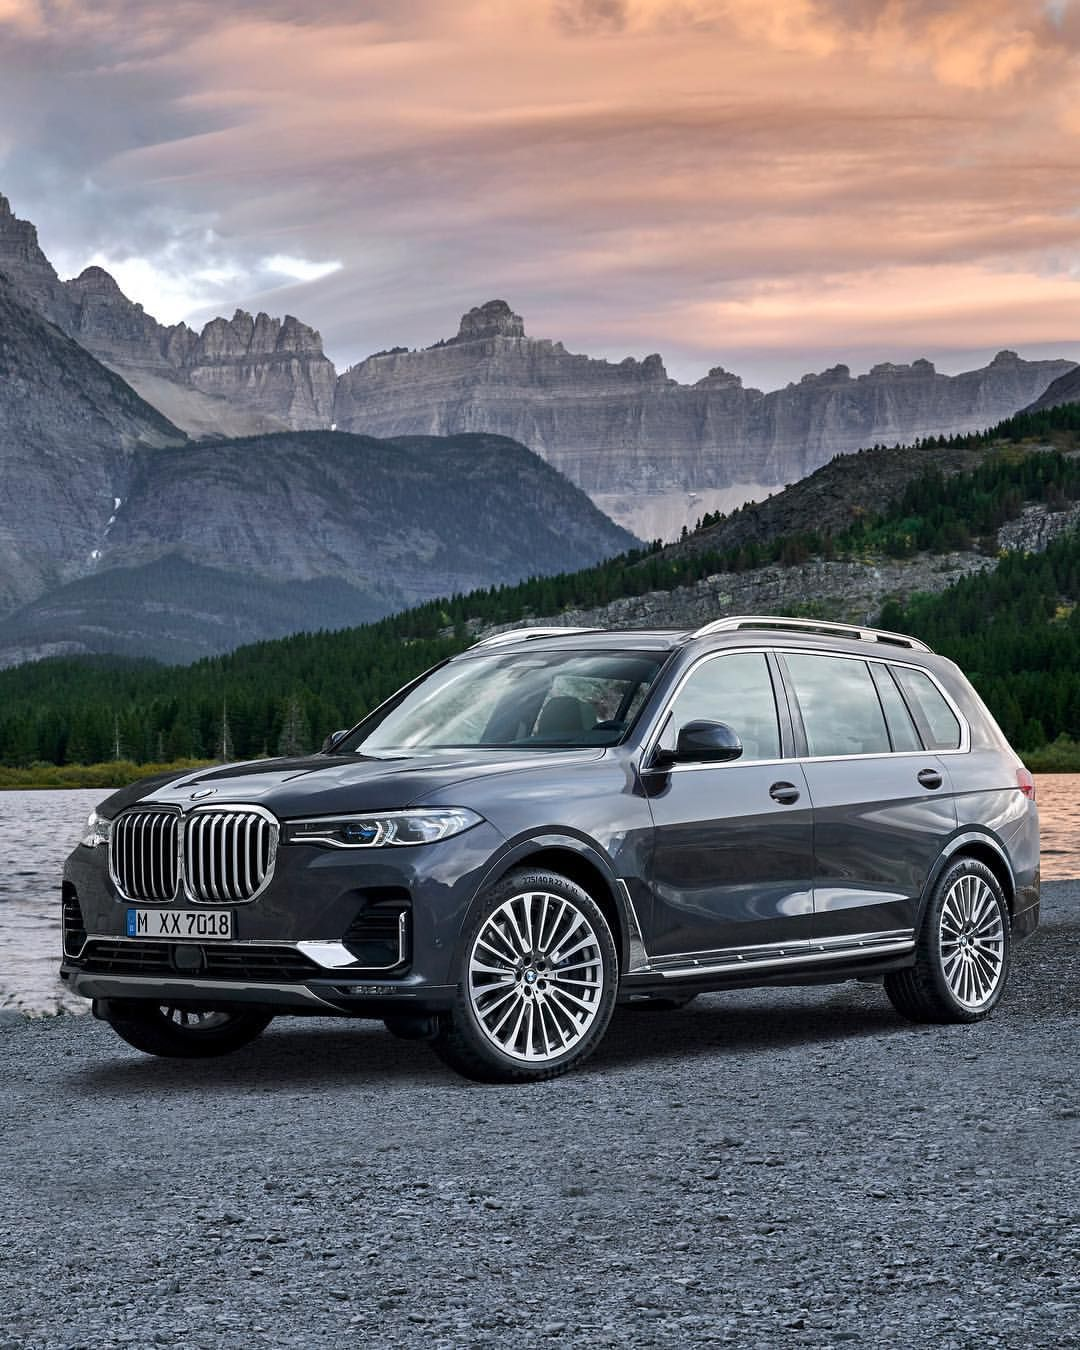 The All New Bmw X7 Bmw On Instagram The Magnitude Of Elegance